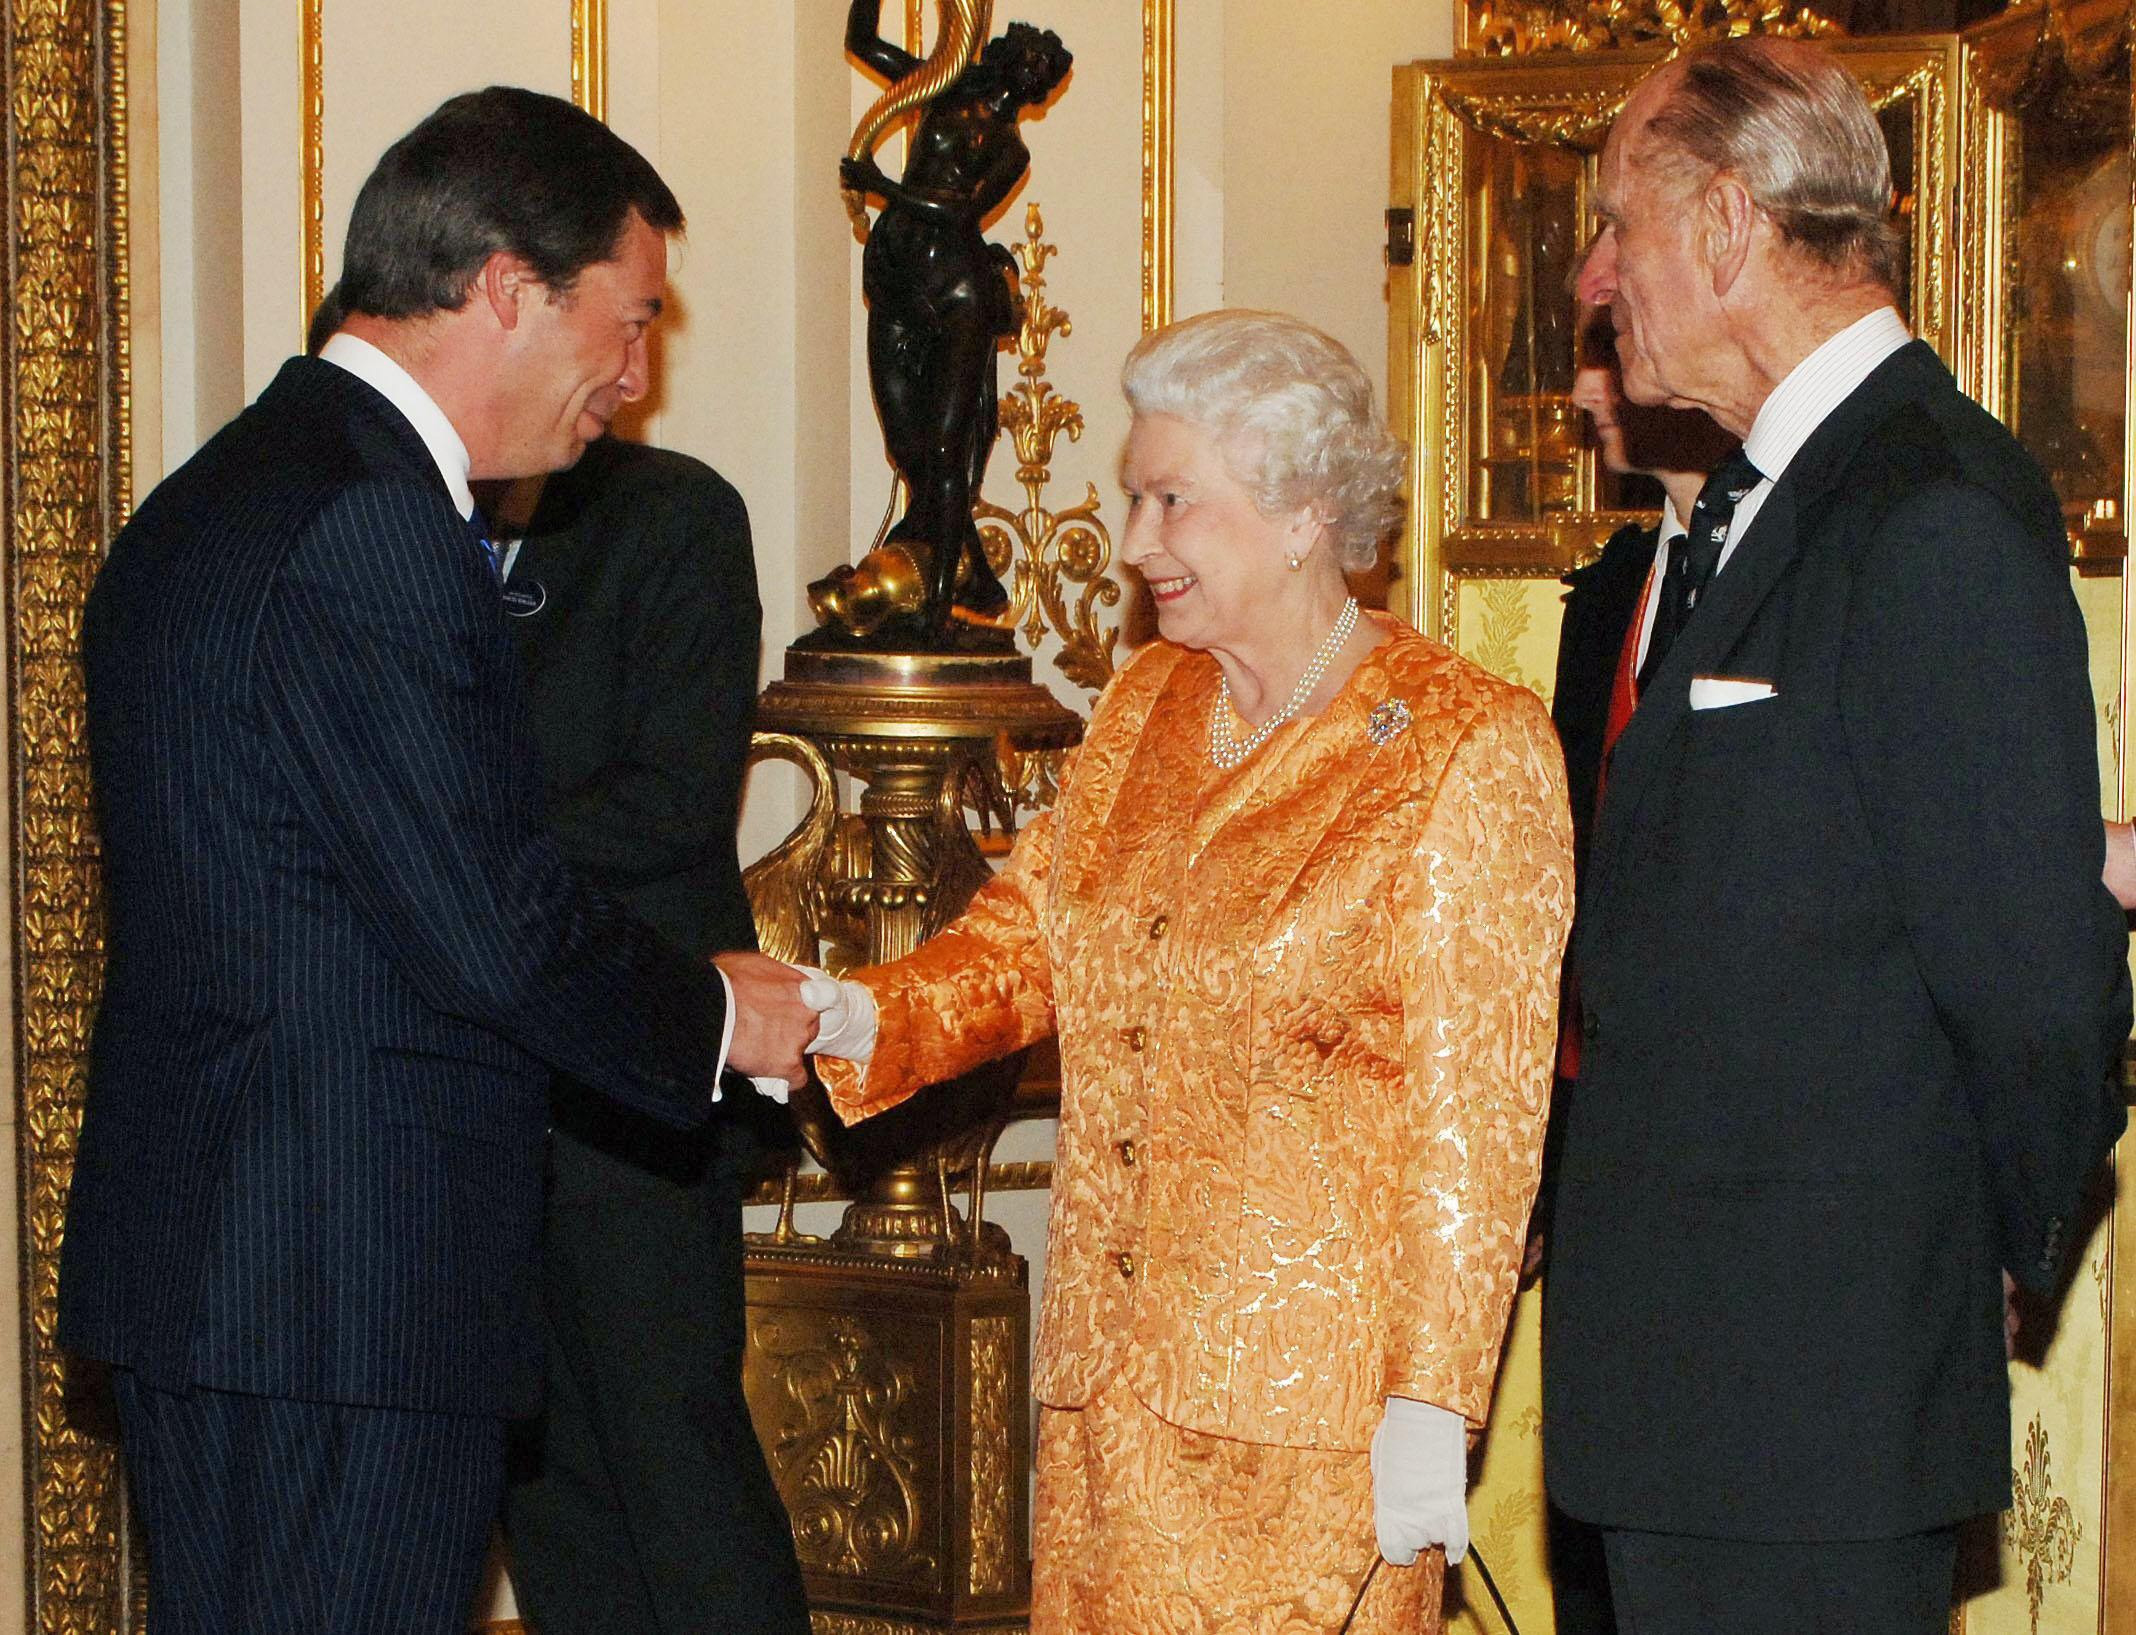 Britain's Queen Elizabeth II and the Duke of Edinburgh (right) host a Buckingham Palace reception for backbench MPs, including Independent Party leader and MEP Nigel Farage (left).